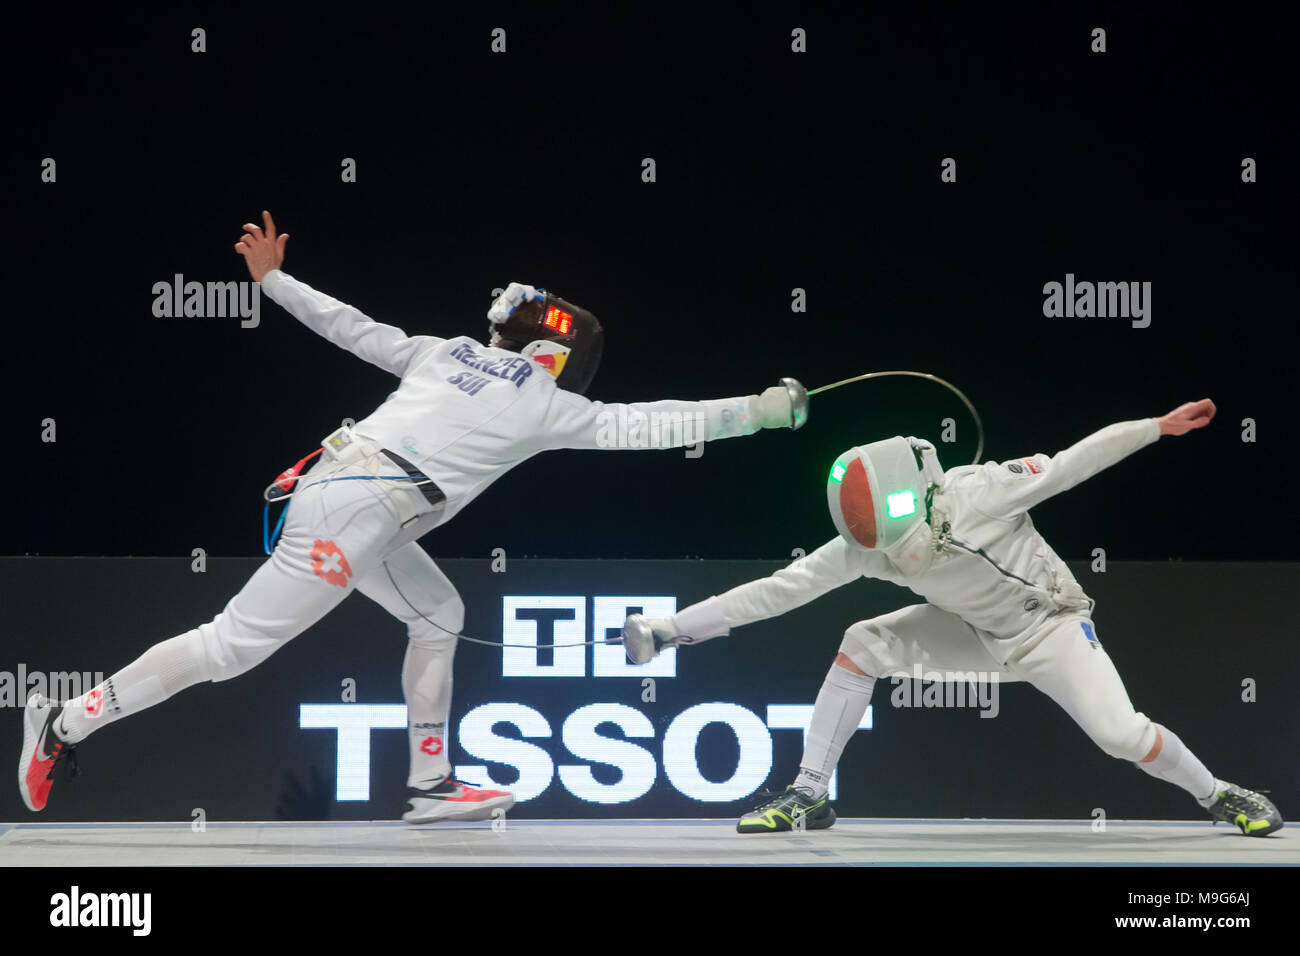 Budapest. 25th Mar, 2018. Max Heinzer (L) of Switzerland fights against Alex Fava of France during the final of the men's Epee Grand Prix in Budapest, Hungary on March 25, 2018. Max Heinzer claimed the title by defeating Alex Fava with 15-13 in the final. Credit: Attila Volgyi/Xinhua/Alamy Live News Stock Photo